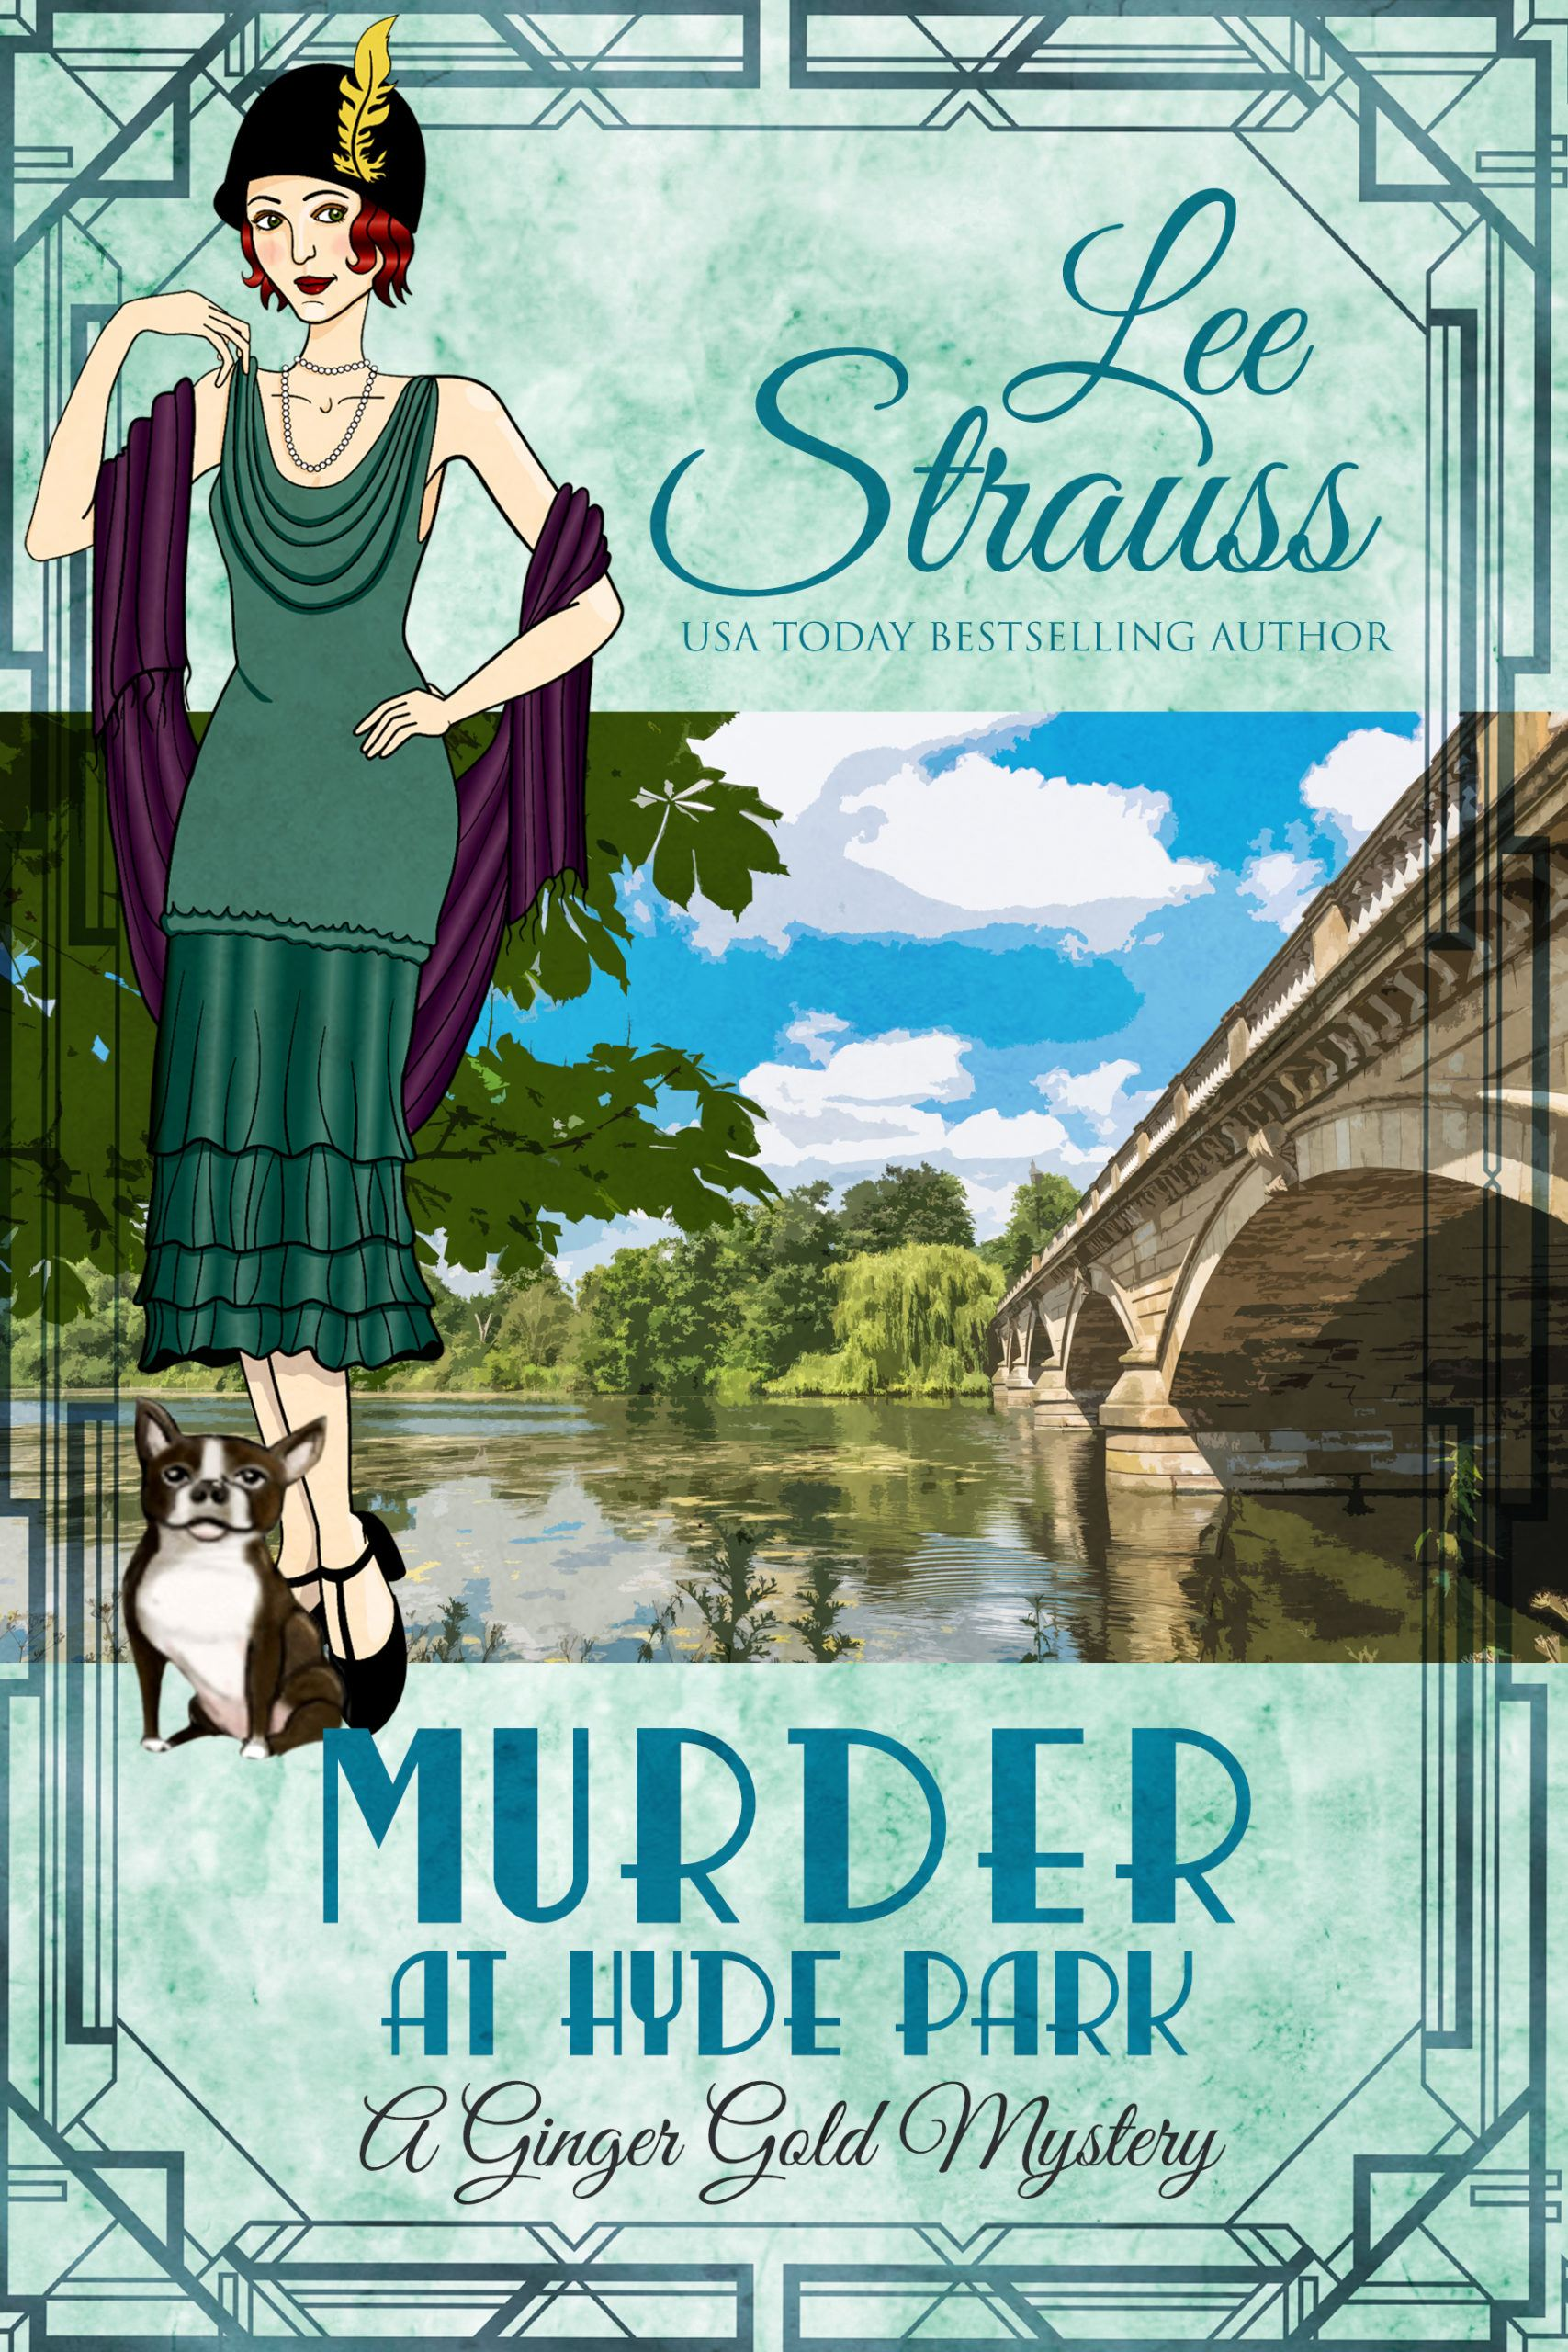 MurderHydePark 1920s book cover fiction new release